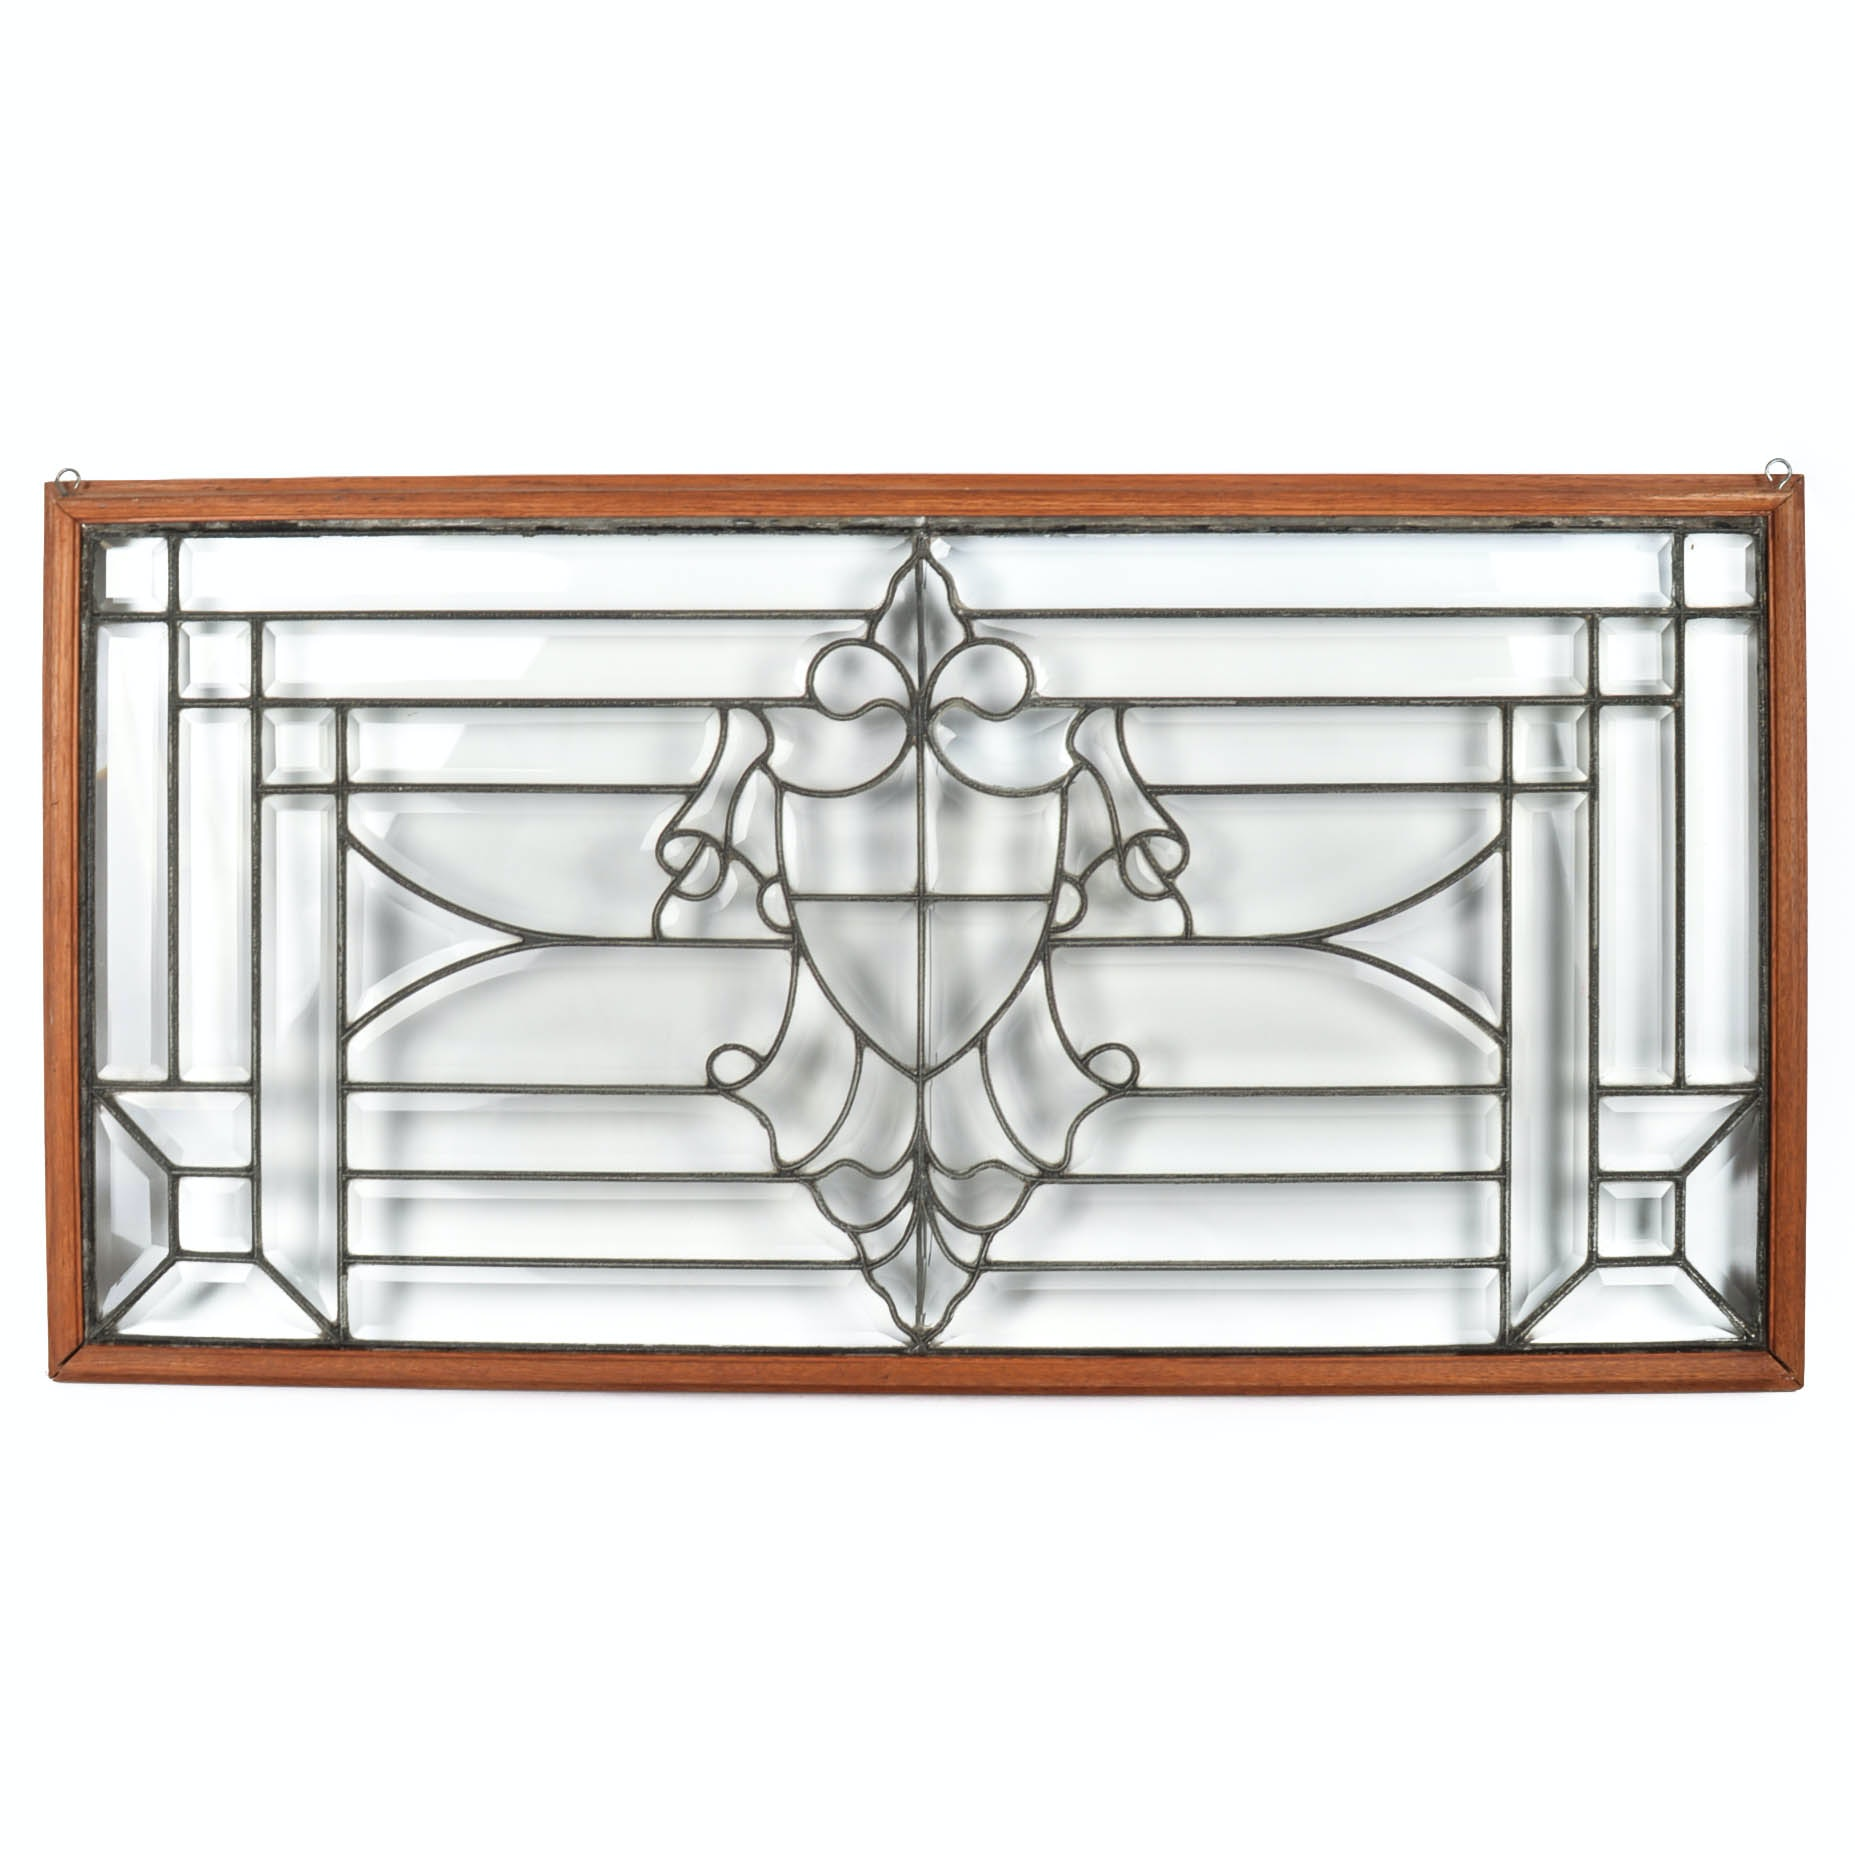 Salvaged Antique Leaded Glass Window